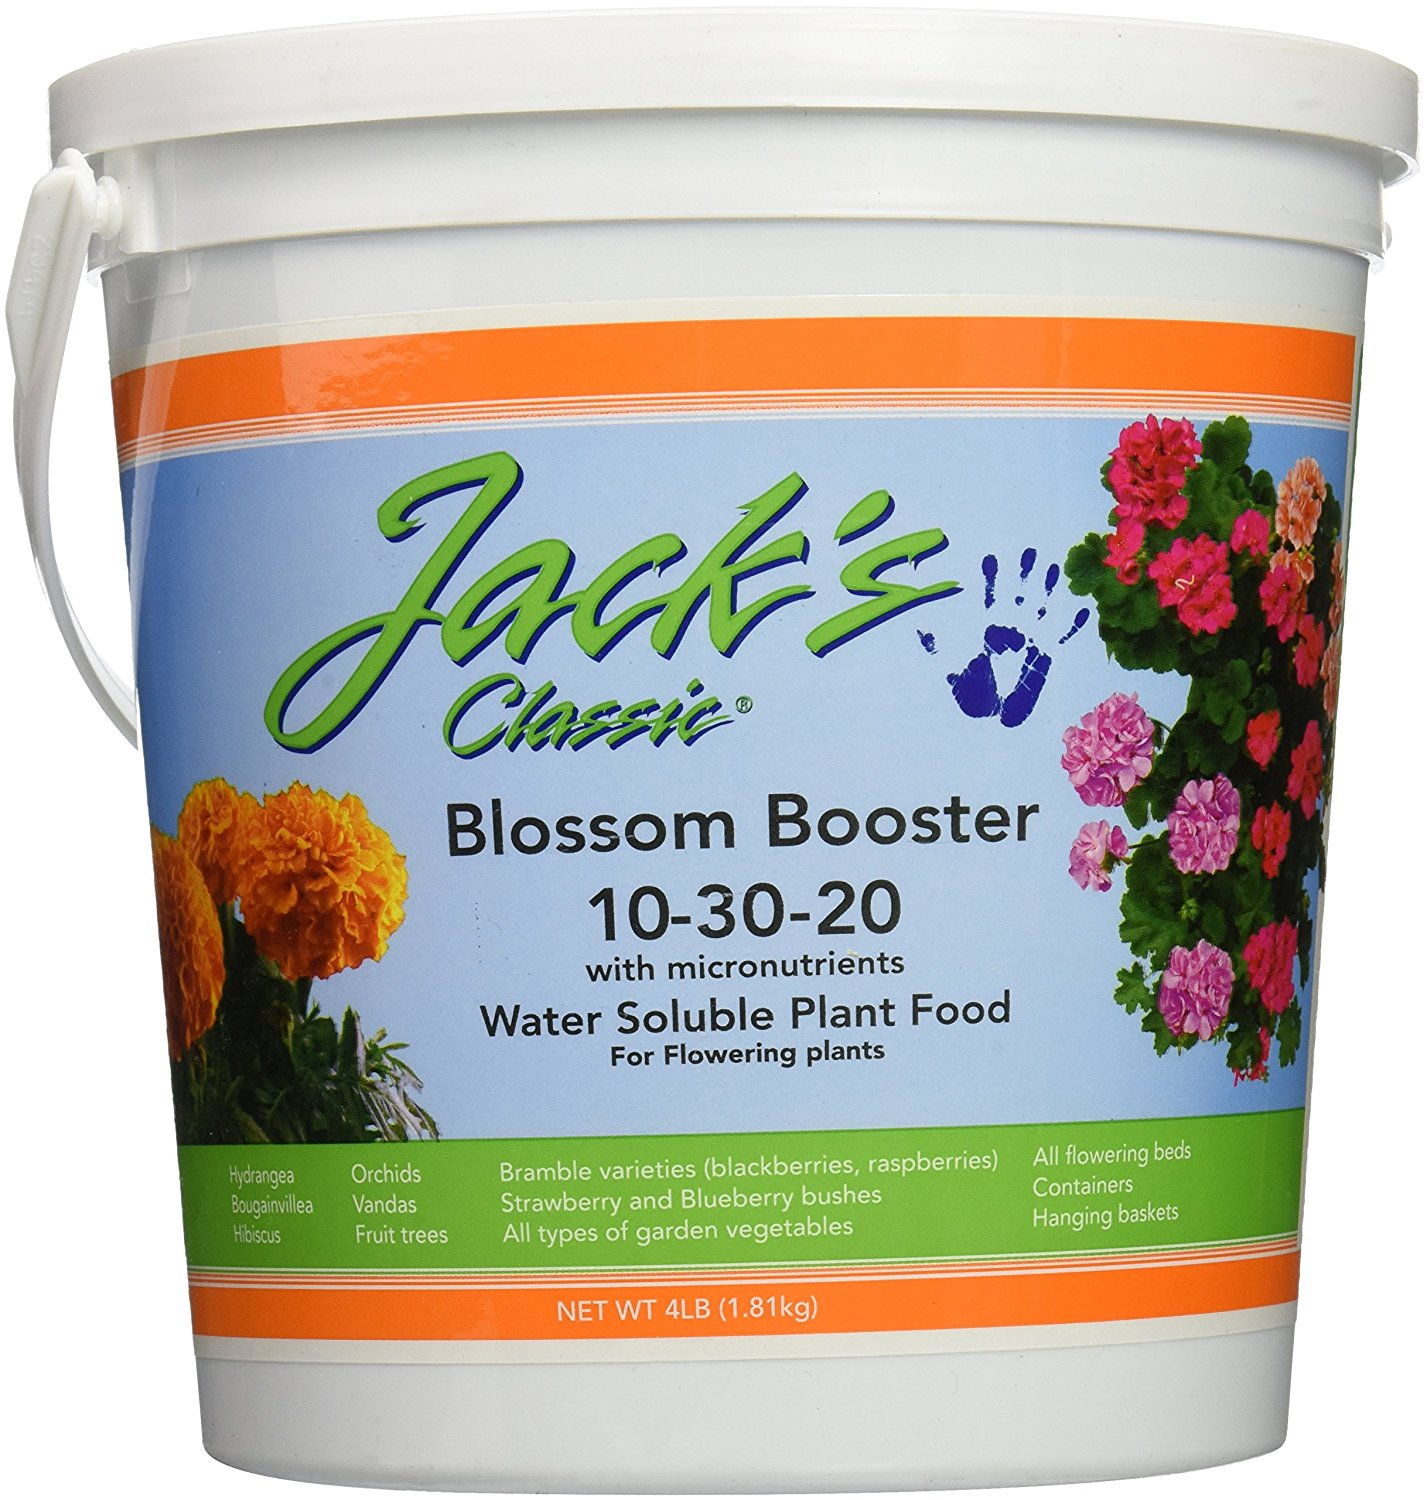 JR Peters Classic Blossom Booster